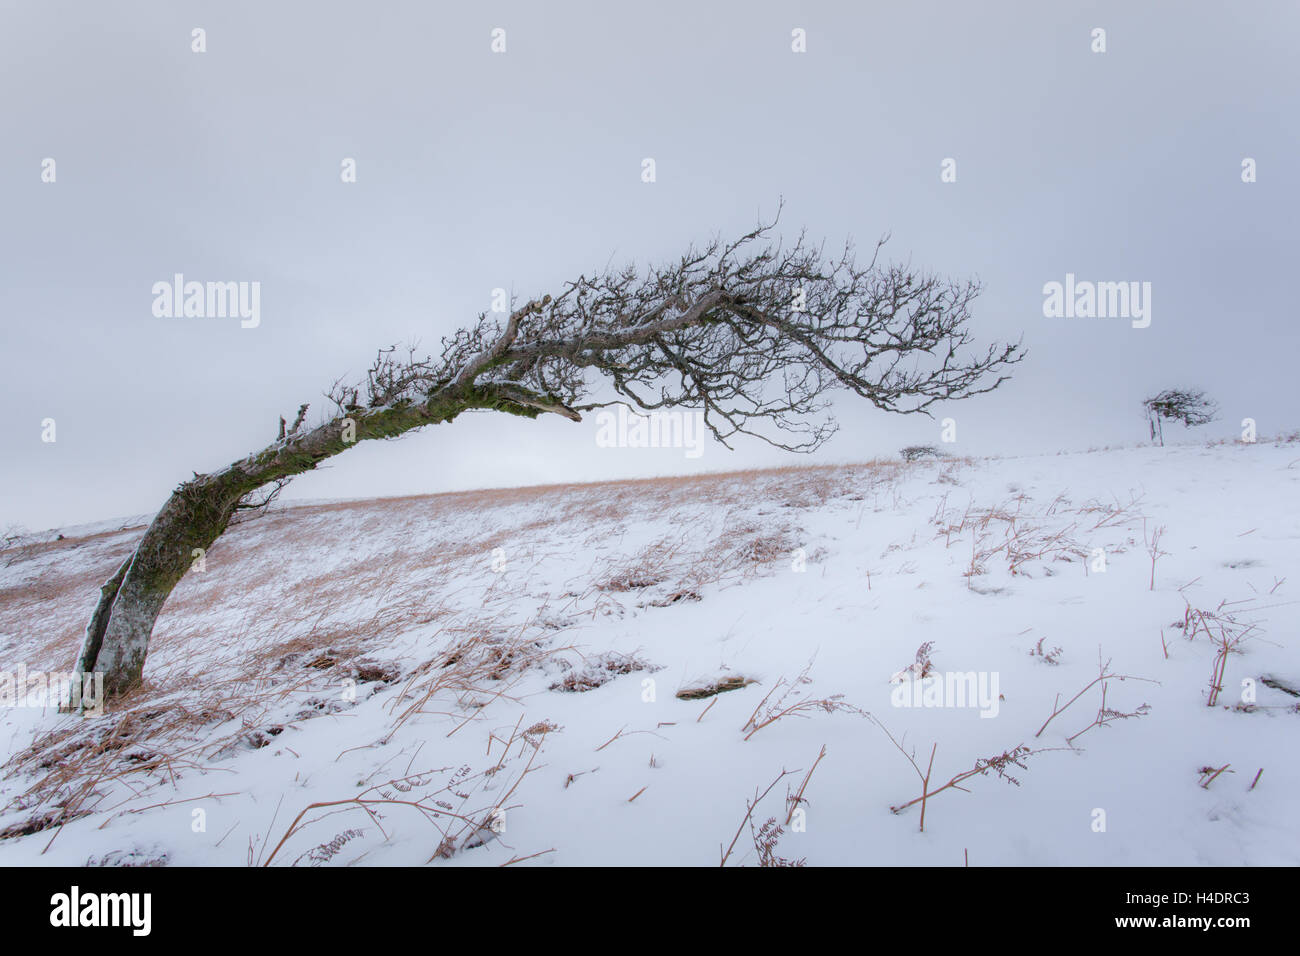 Lone wind swept tree in the snow just after snow fall on Great Mell fell in the English Lake District near Ullswater - Stock Image